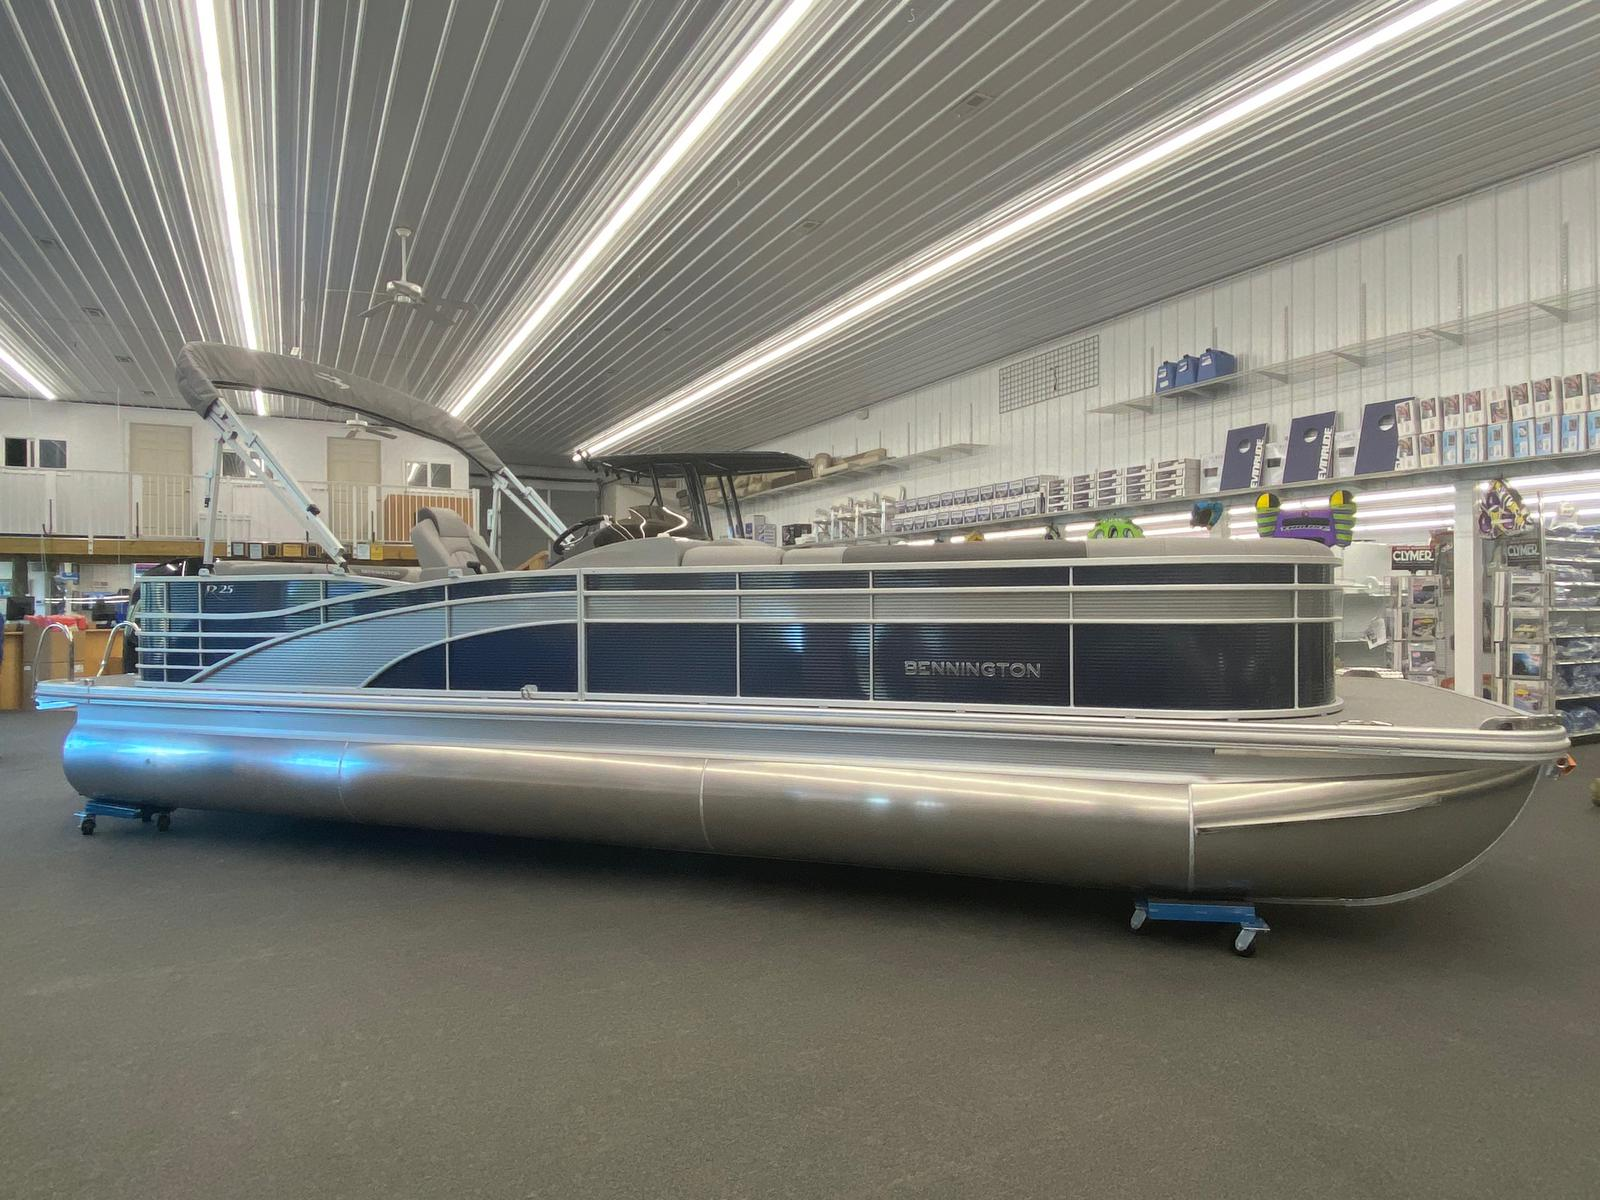 2021 Bennington boat for sale, model of the boat is 25 RL Tri-Toon ESP Performance Package & Image # 1 of 16